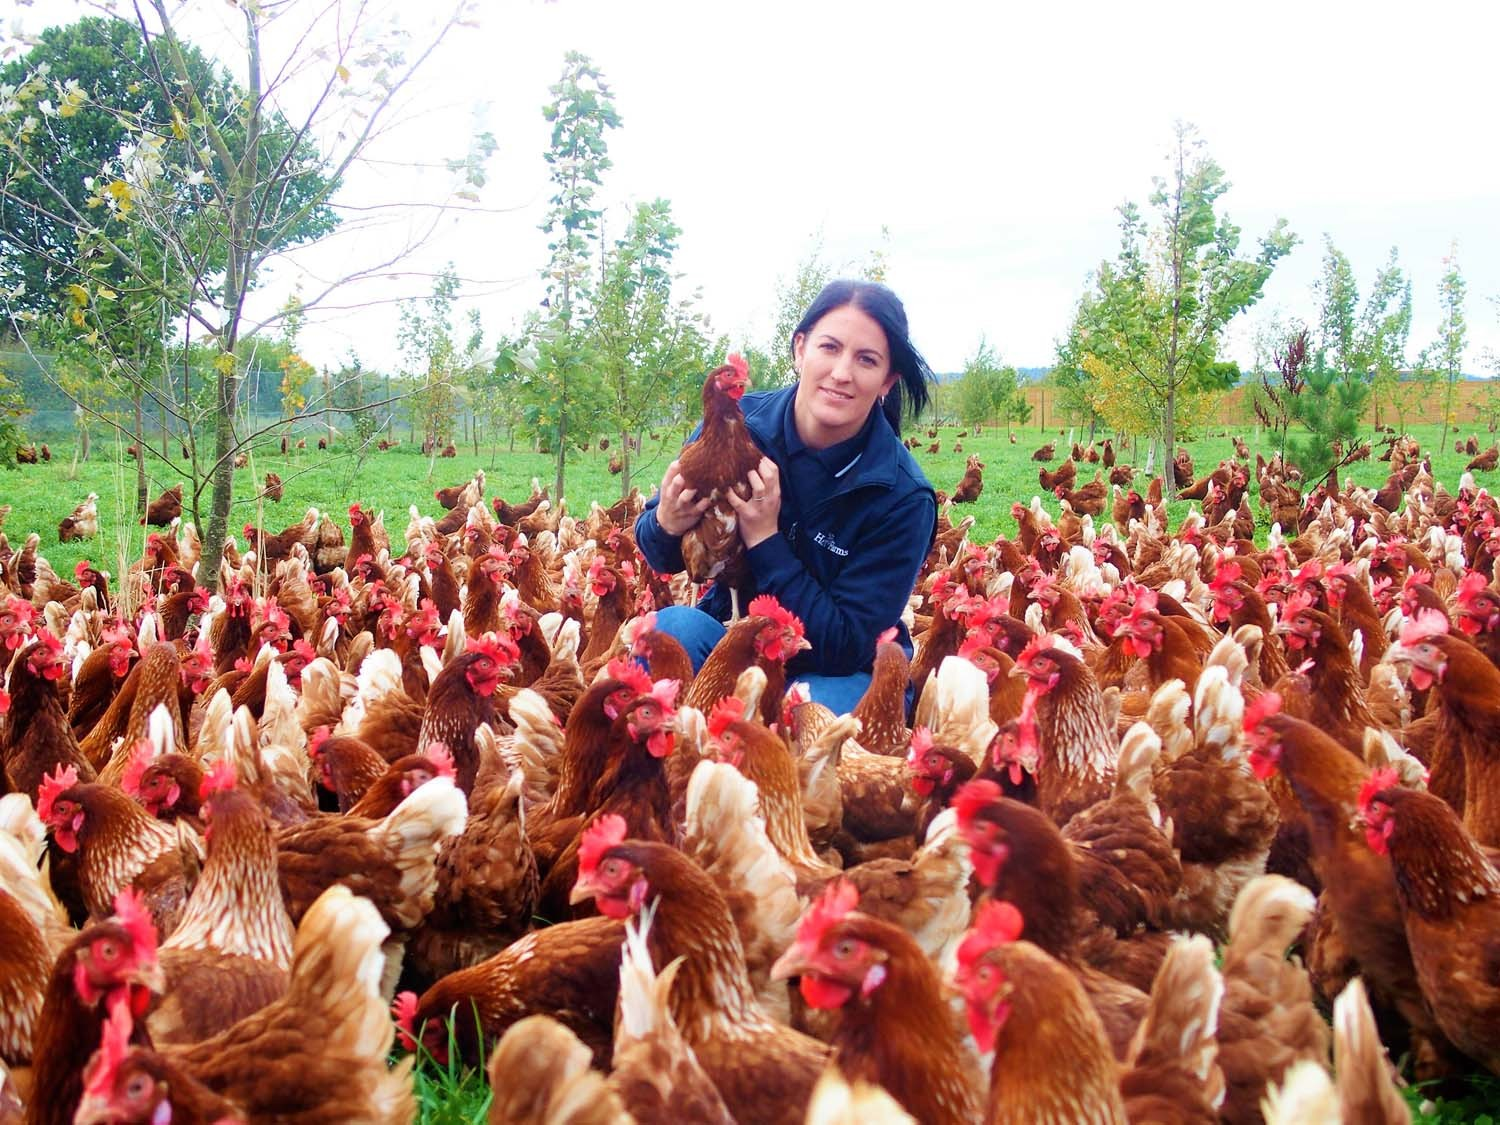 Sam says she has developed a passion for the science behind poultry farming - something she hopes to develop if she wins the training grant. Photo: Sam Alexander